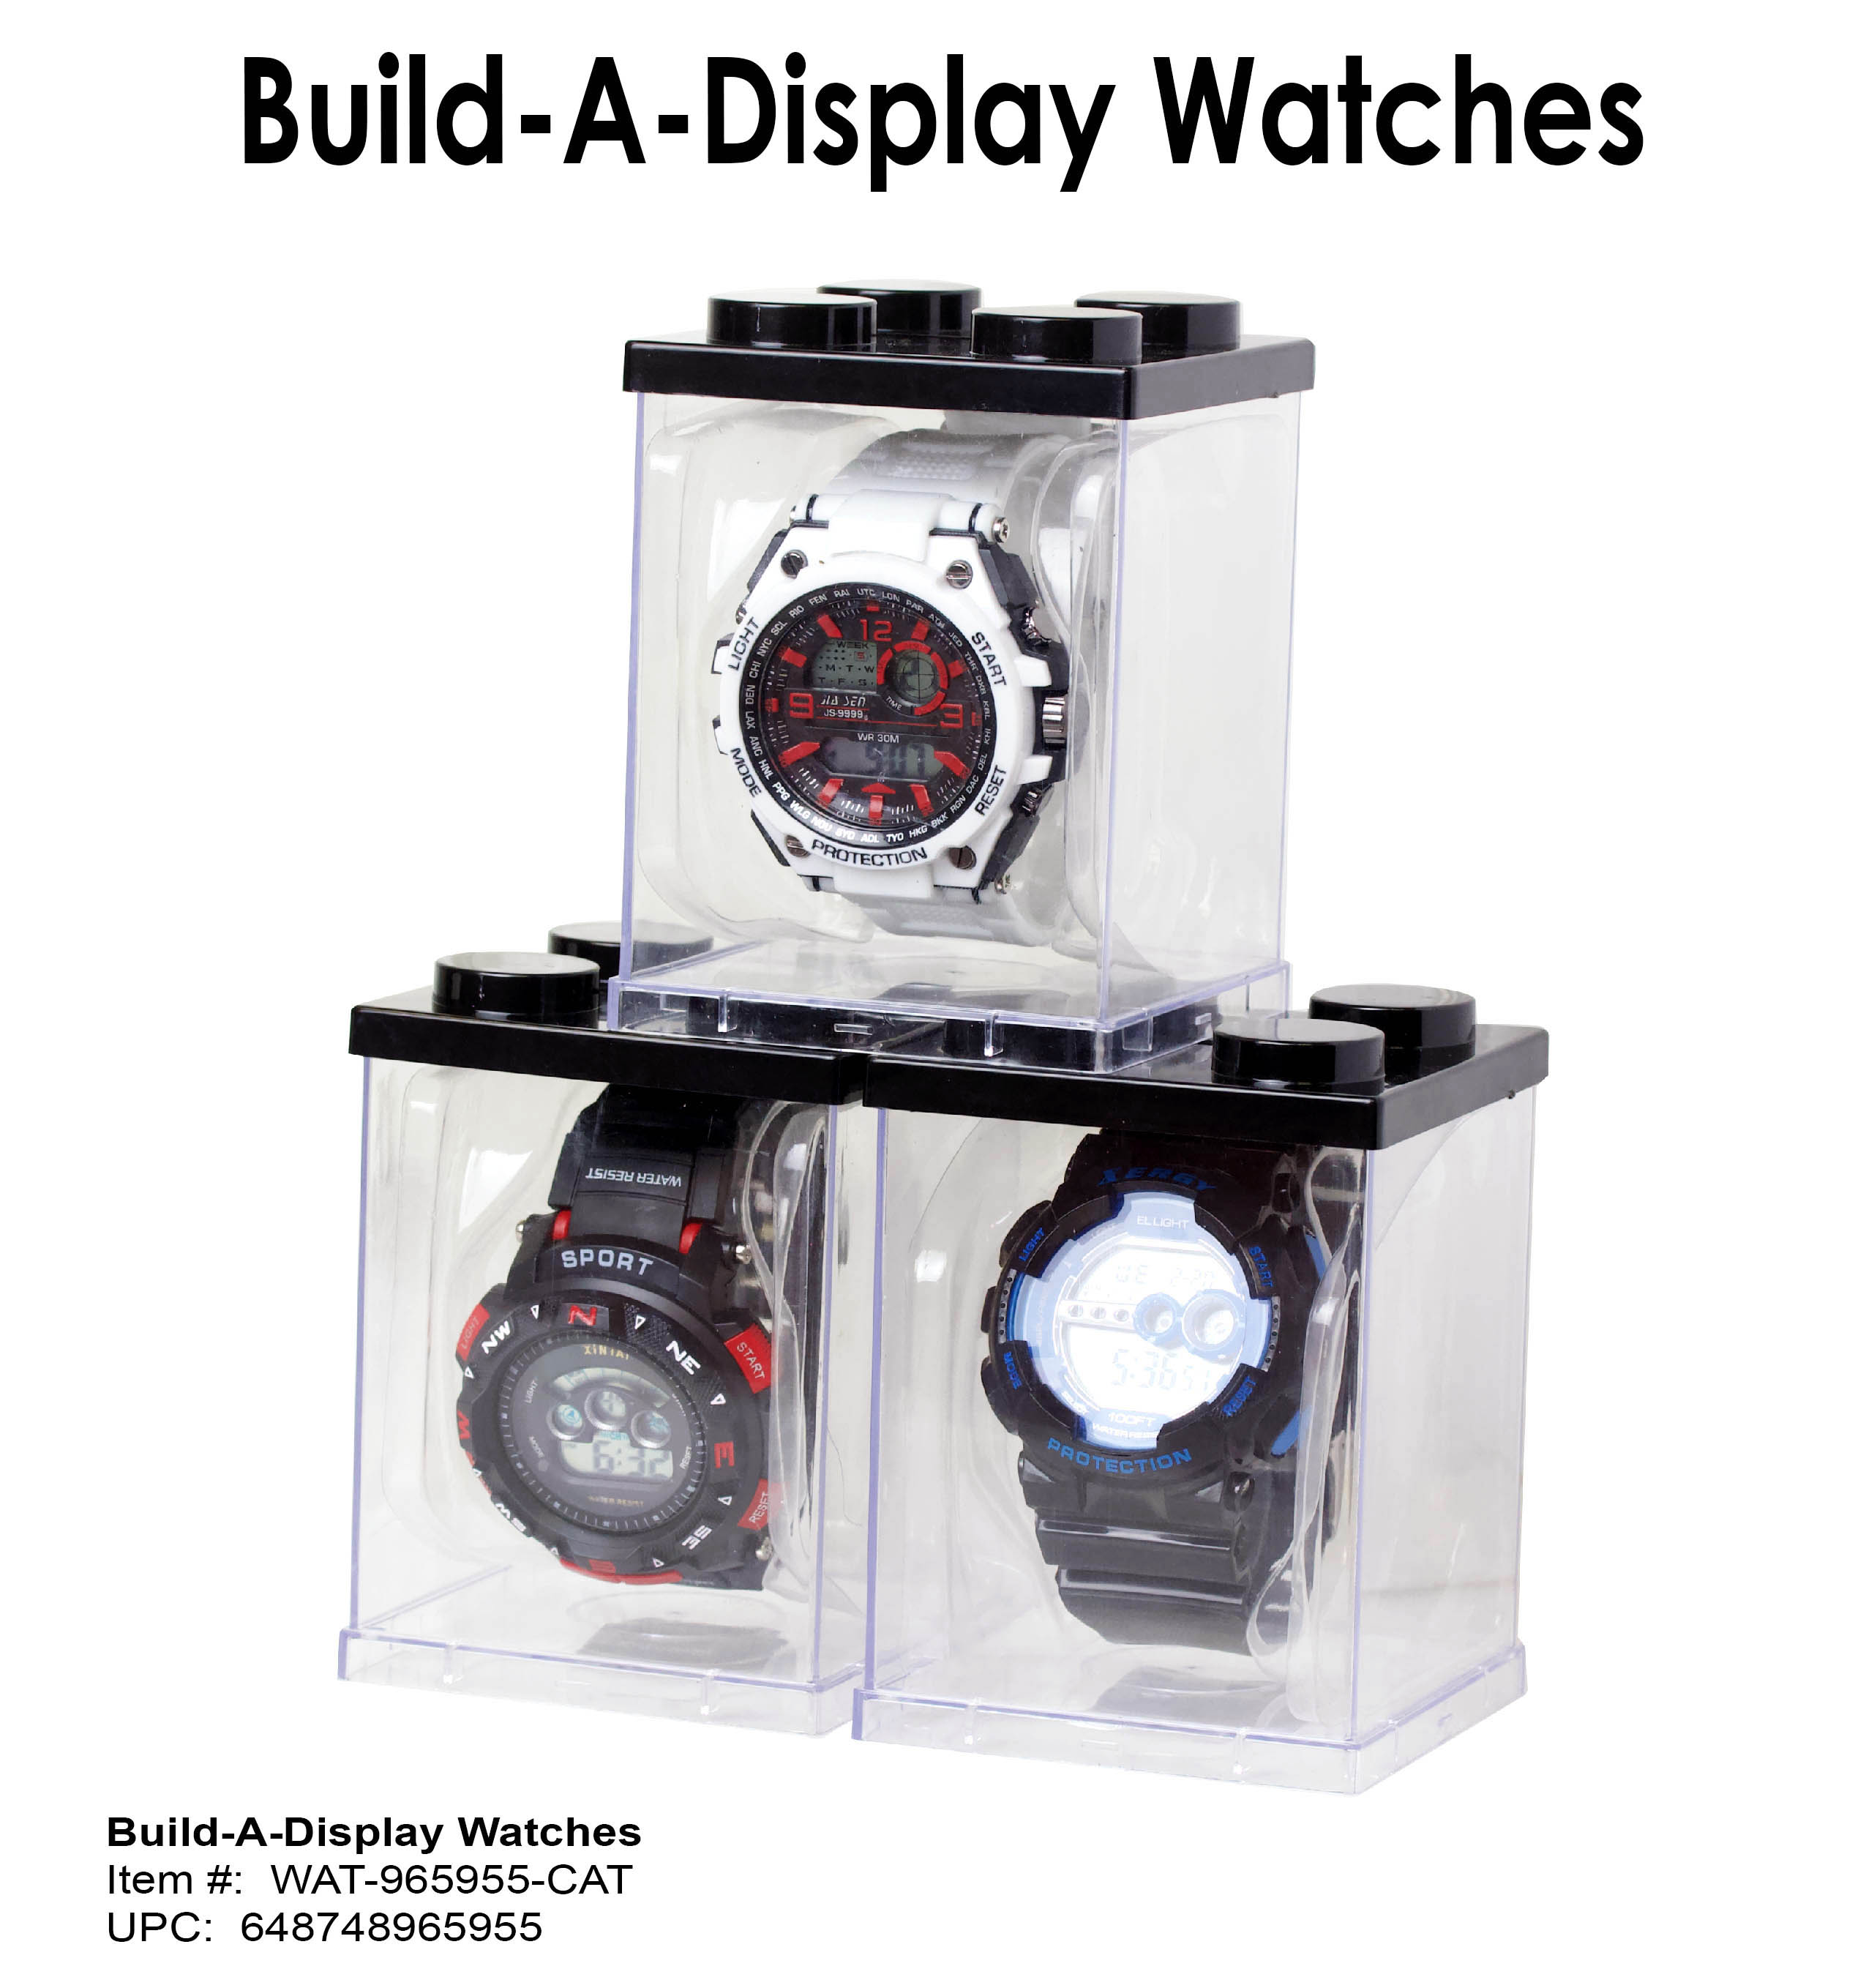 1-BuildadisplayWatches